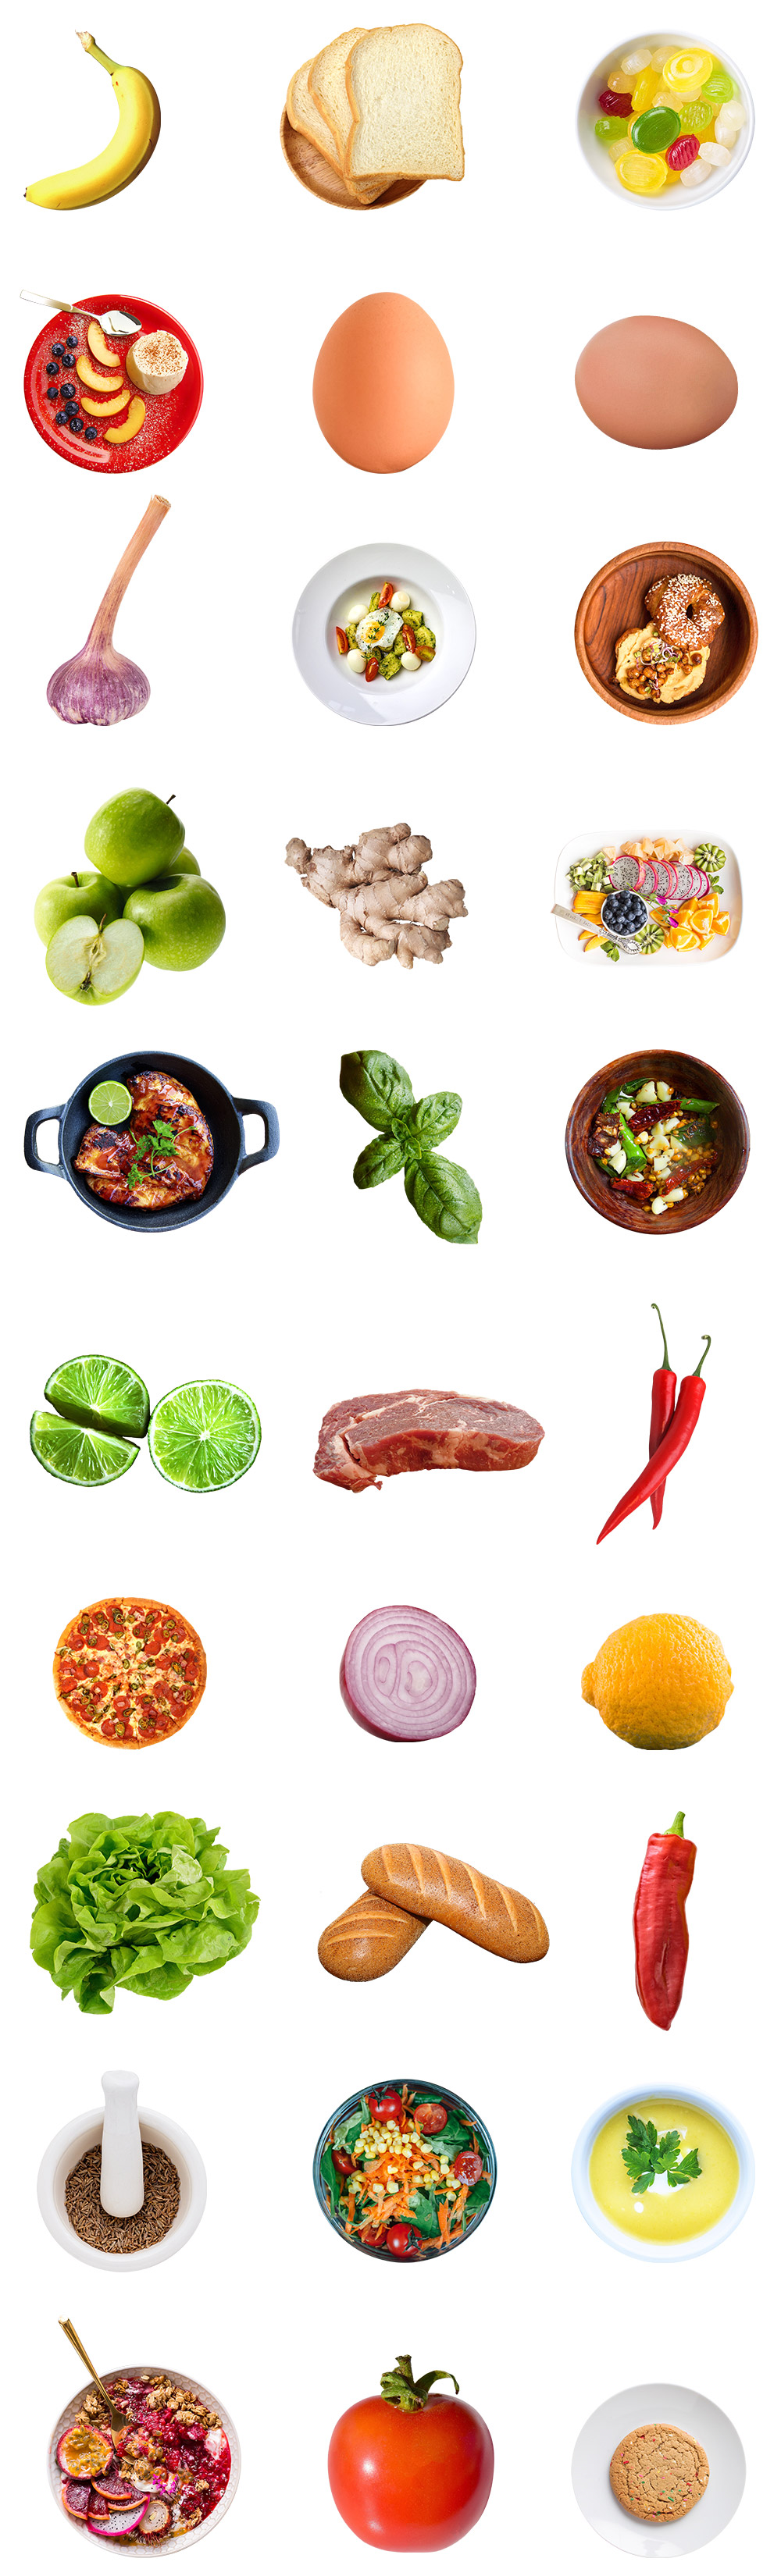 Isolated Food Images